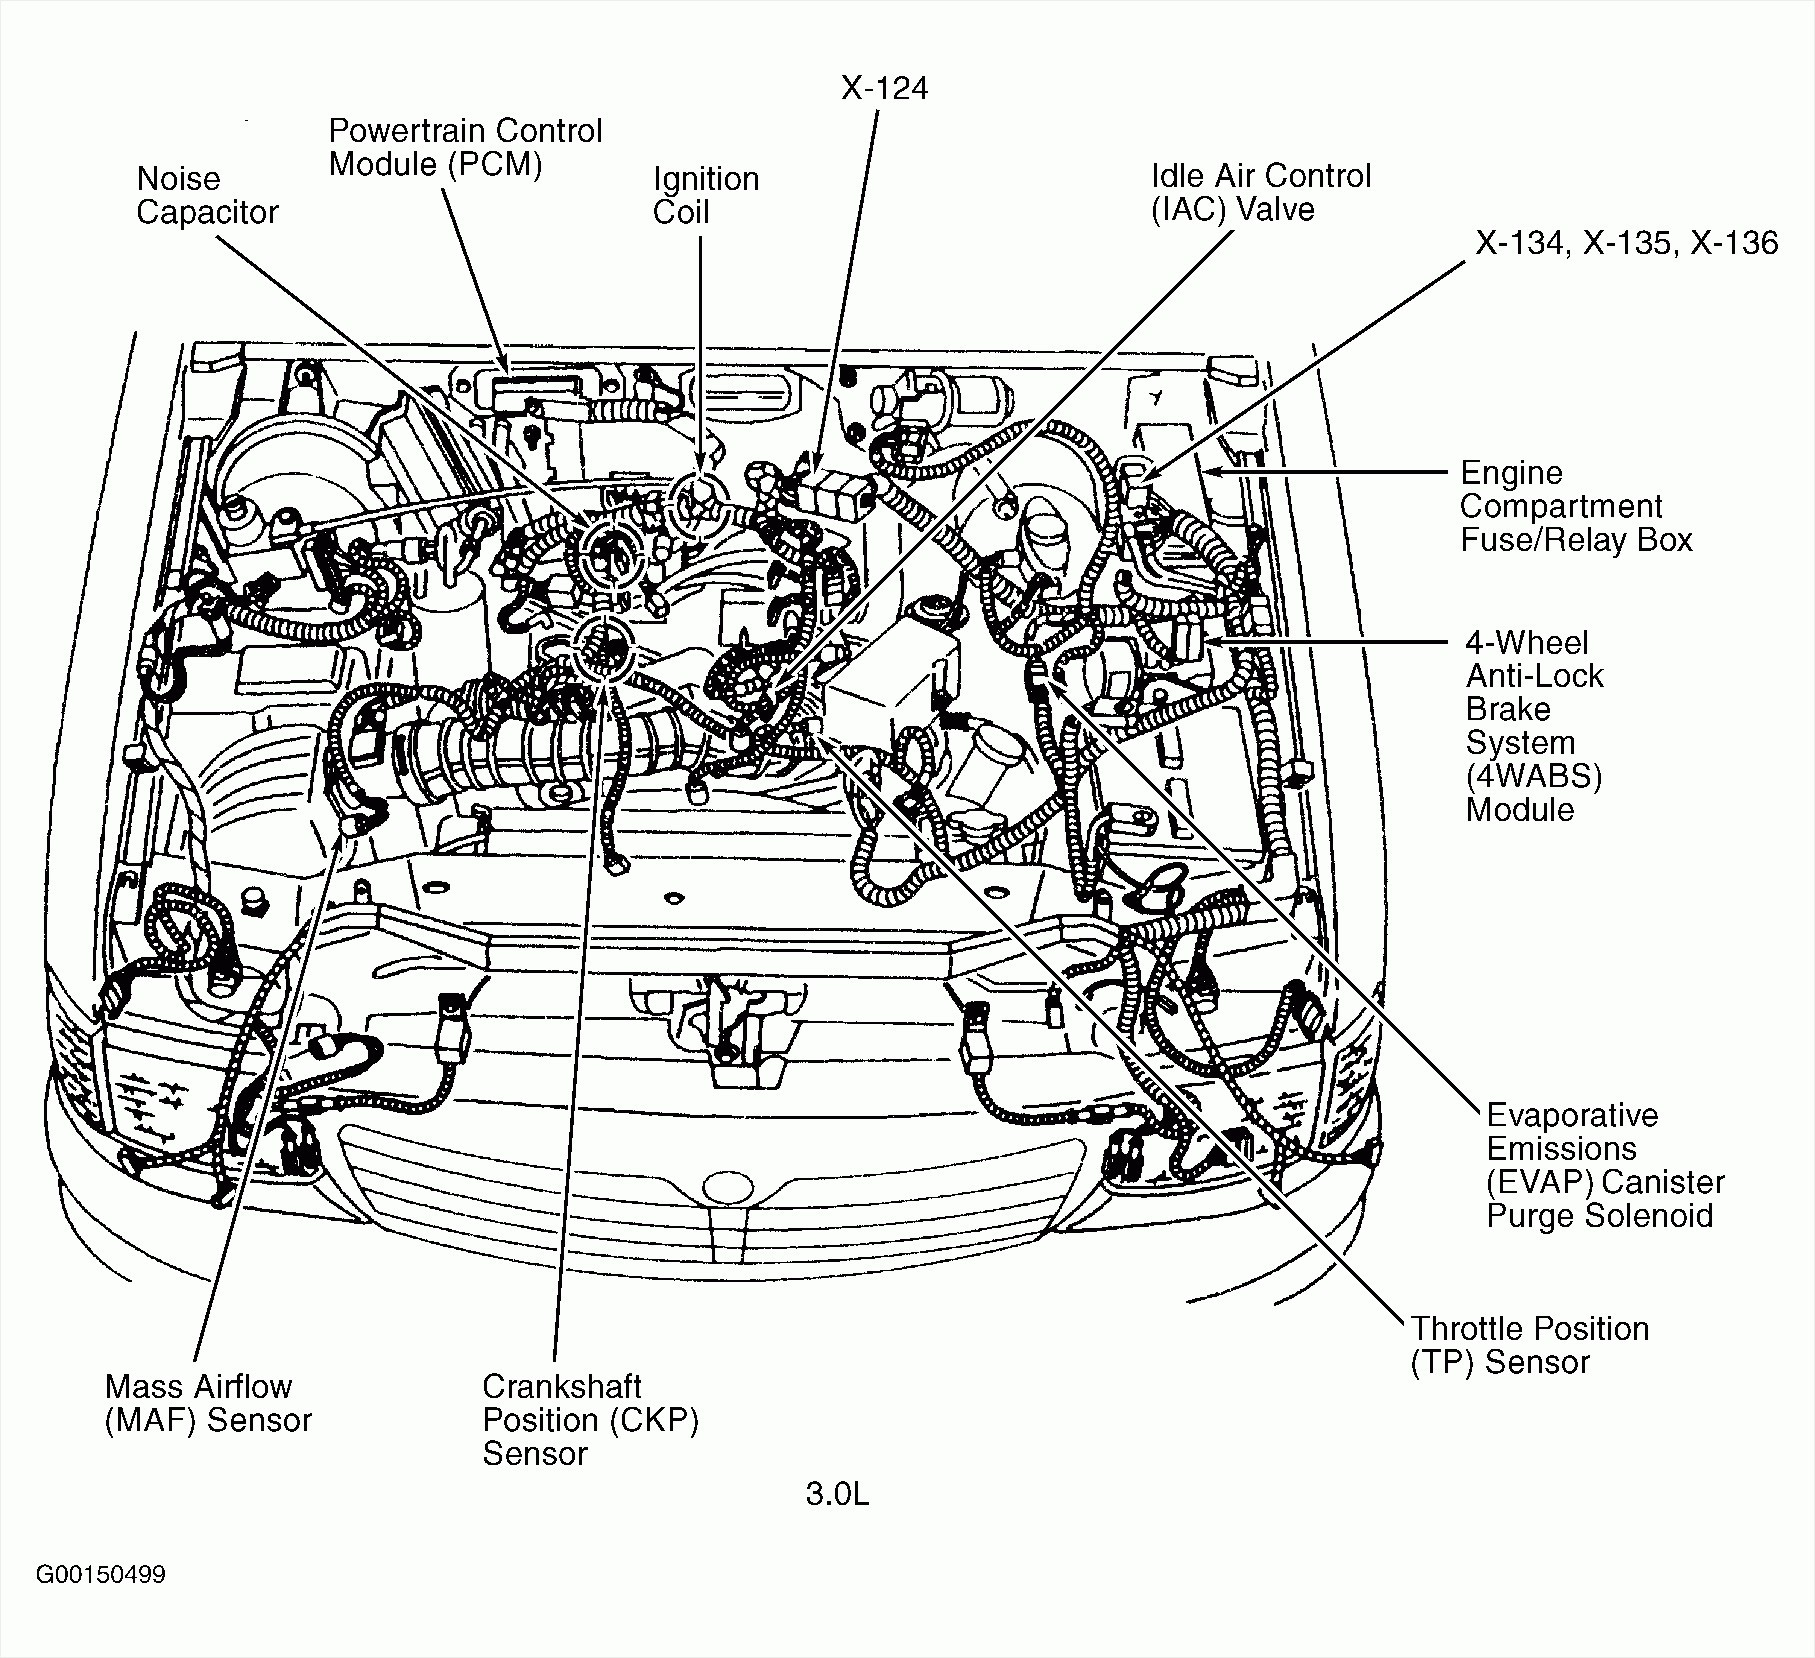 hight resolution of chevy 3 1 engine diagram wiring diagram name chevy lumina engine diagram on vacuum diagram 1996 chevy s10 4 3